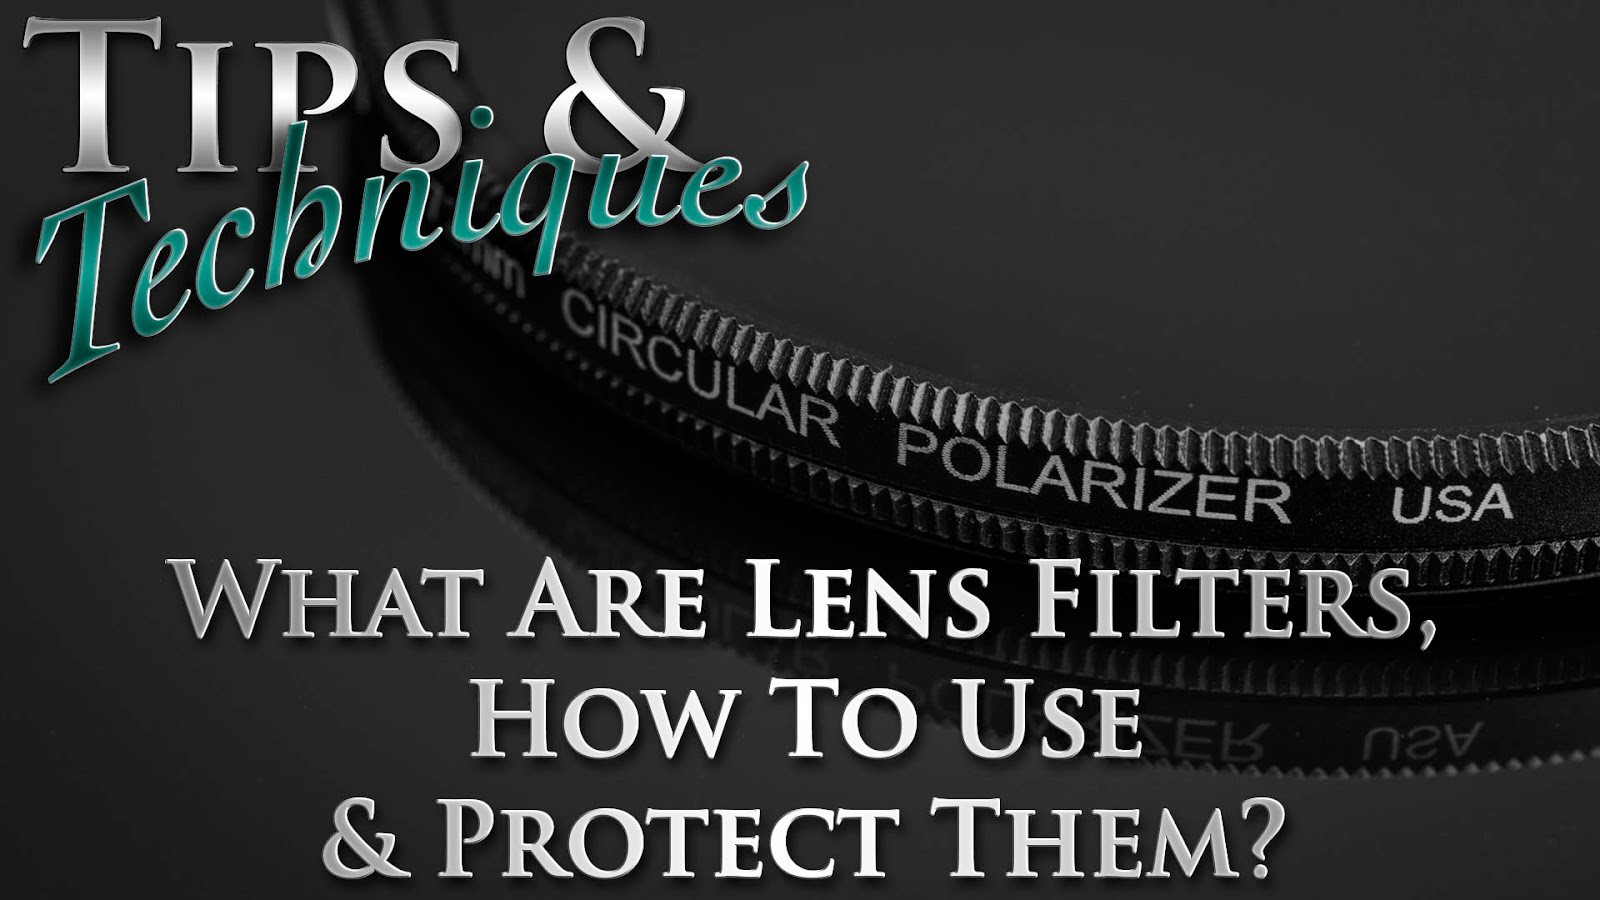 What Are Lens Filters, How To Use & Protect Them? | Tips & Techniques